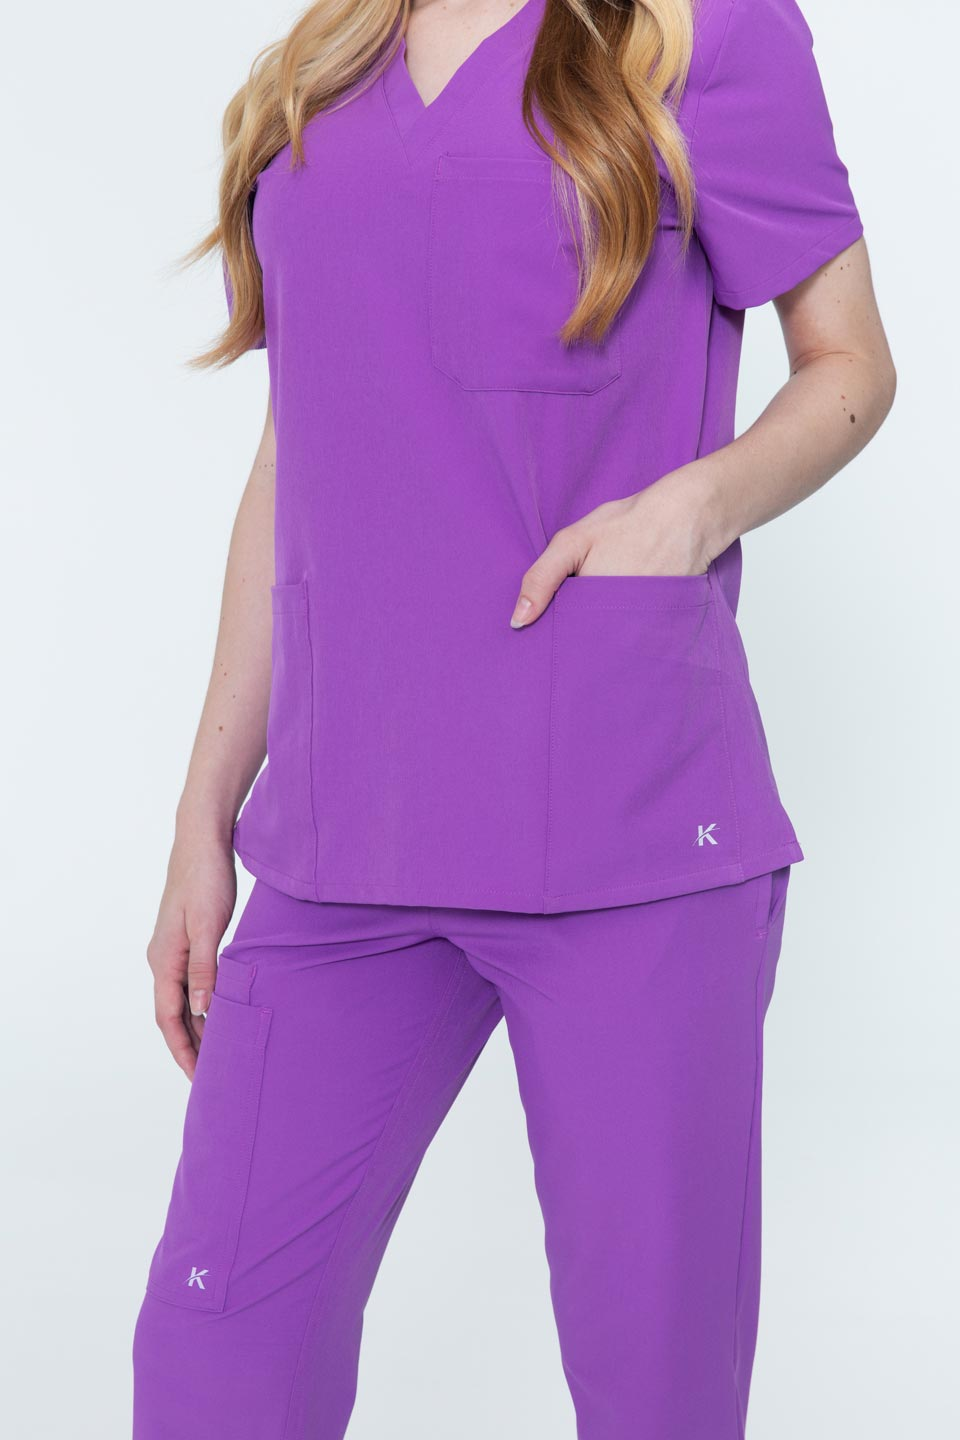 Kalea - Womens Reverie Scrub Top - Purple